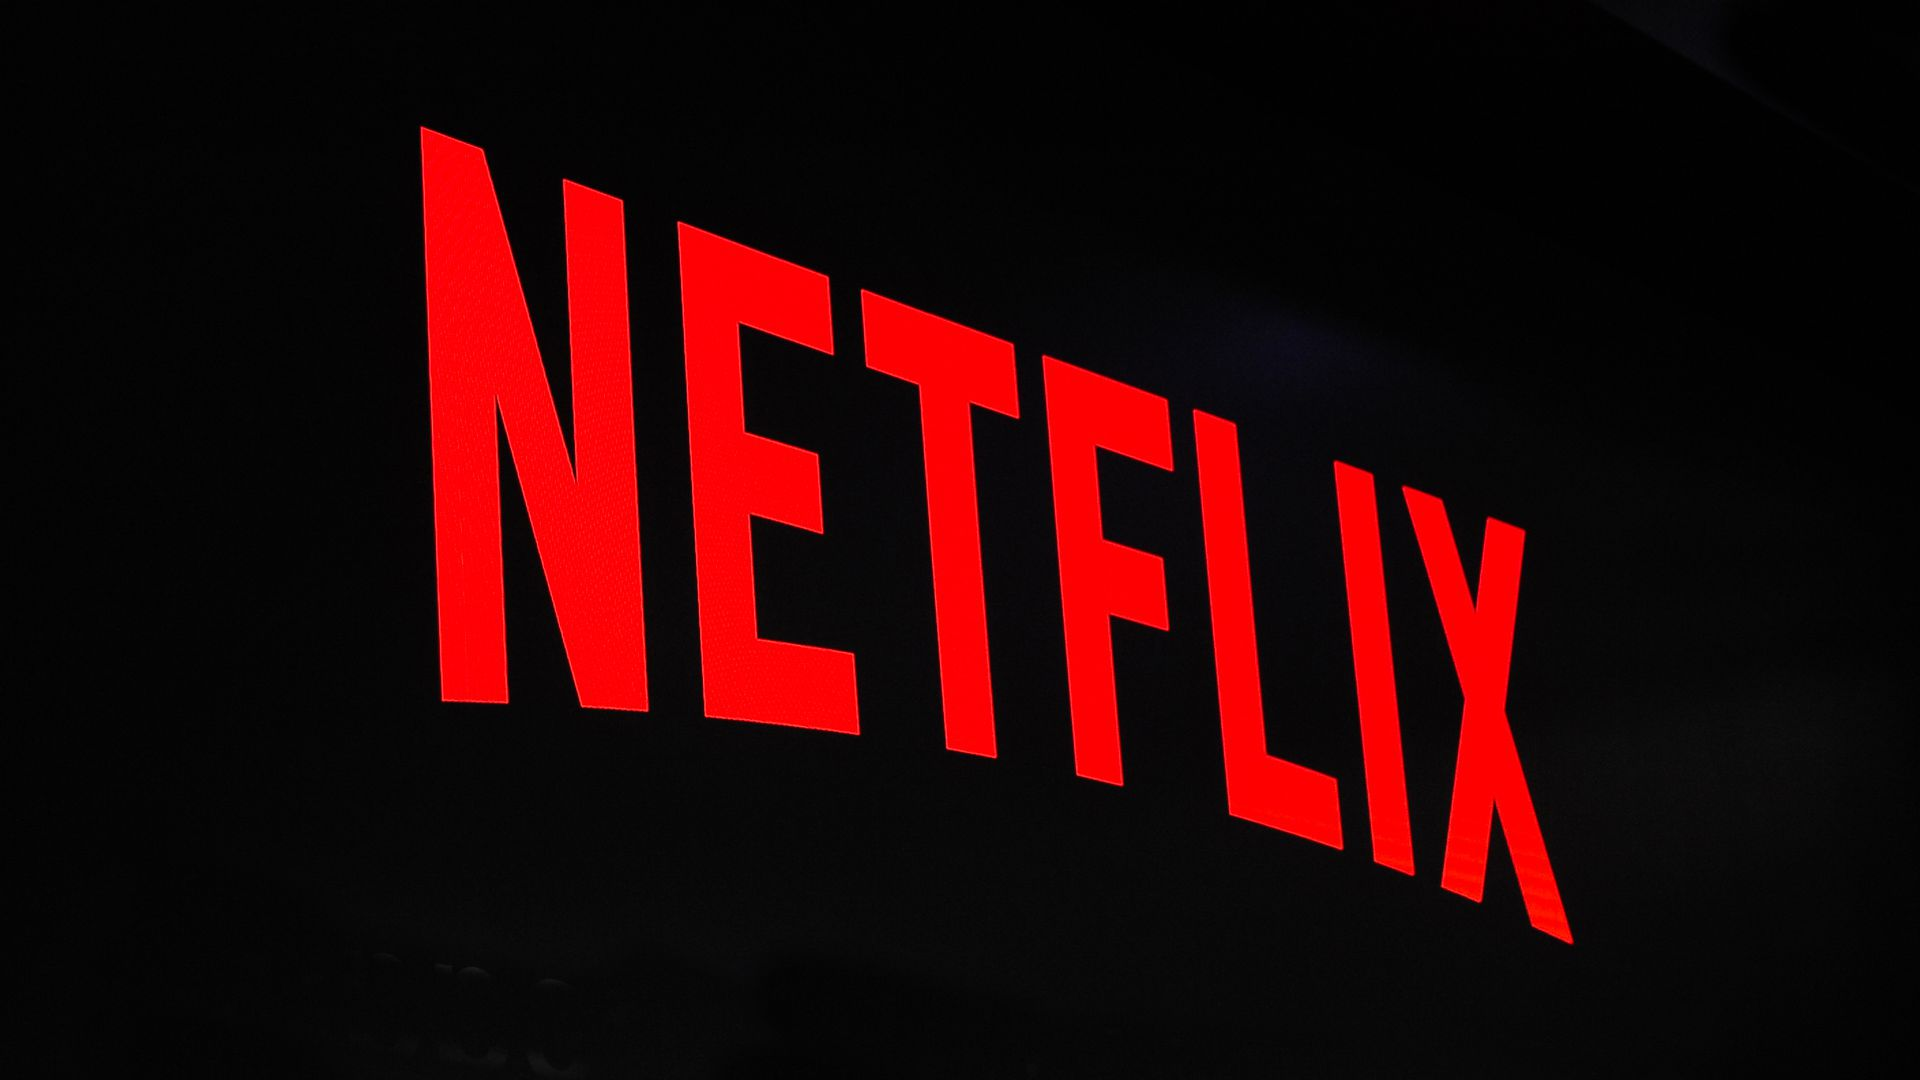 This image is the Netflix logo.